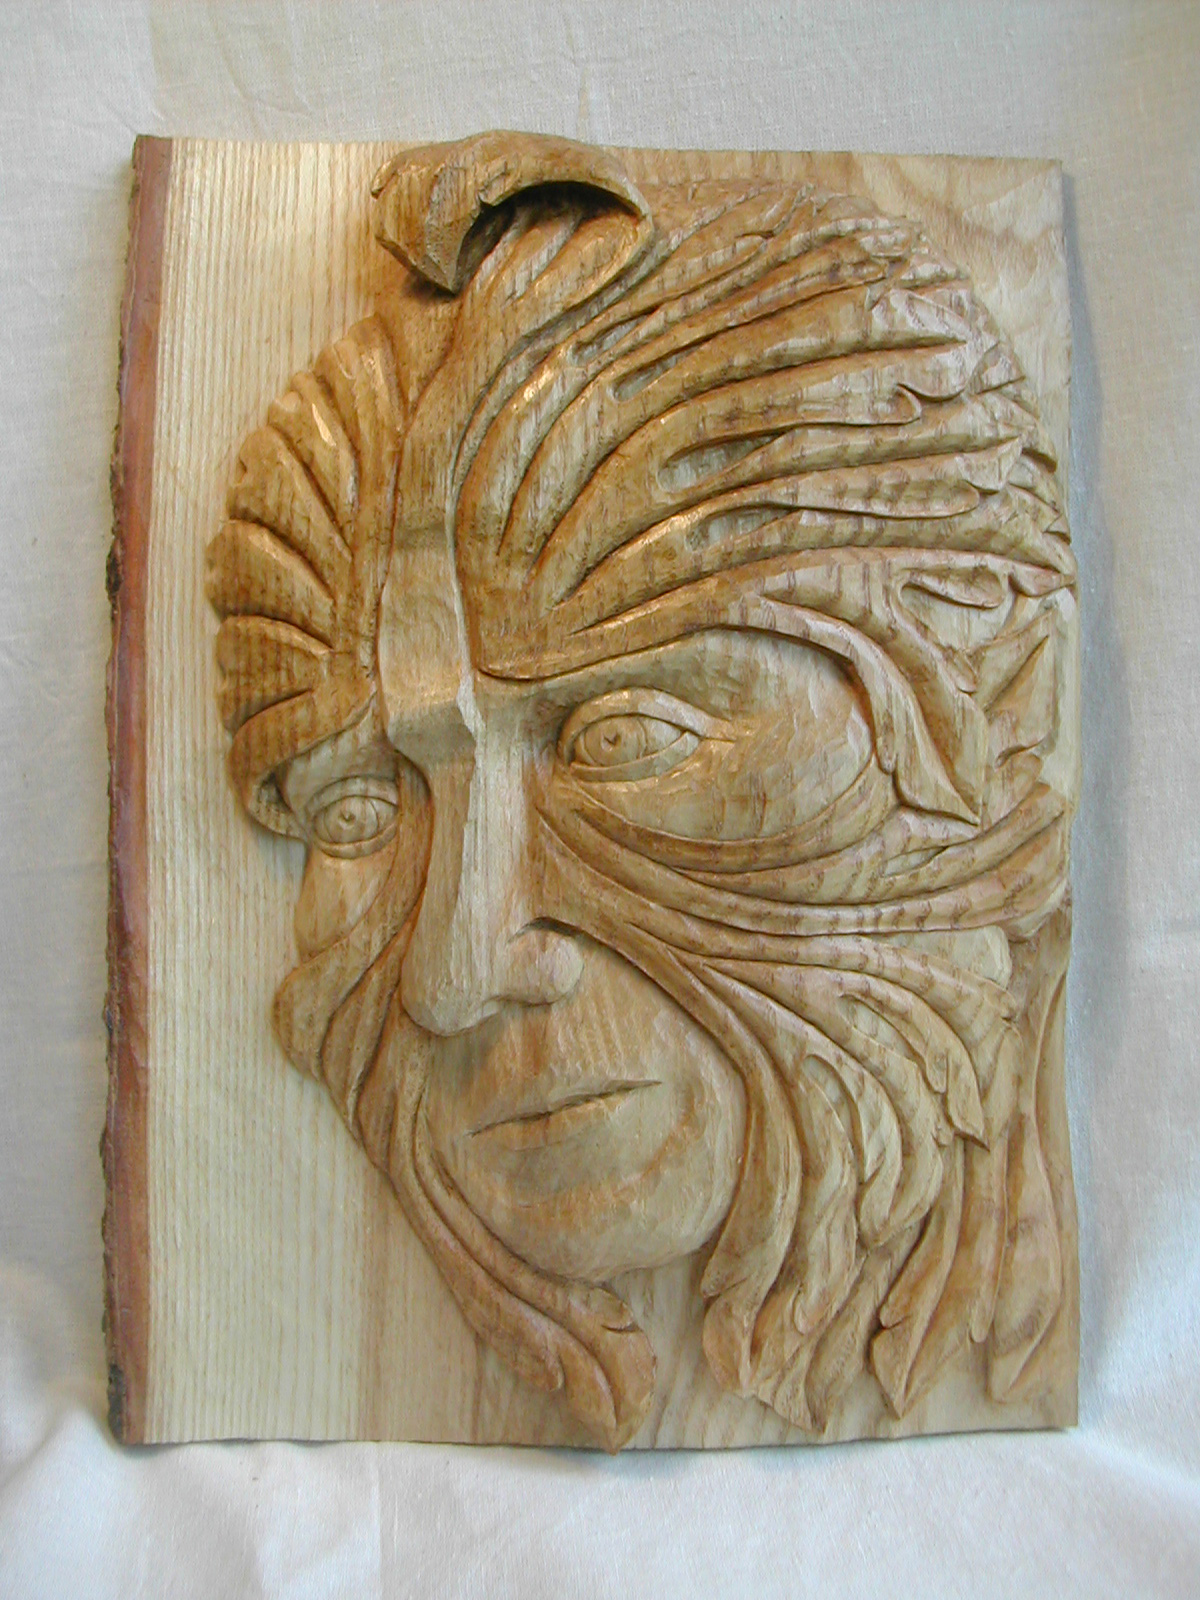 Doris fiebig´s gallery fiebig and yundt woodcarving page